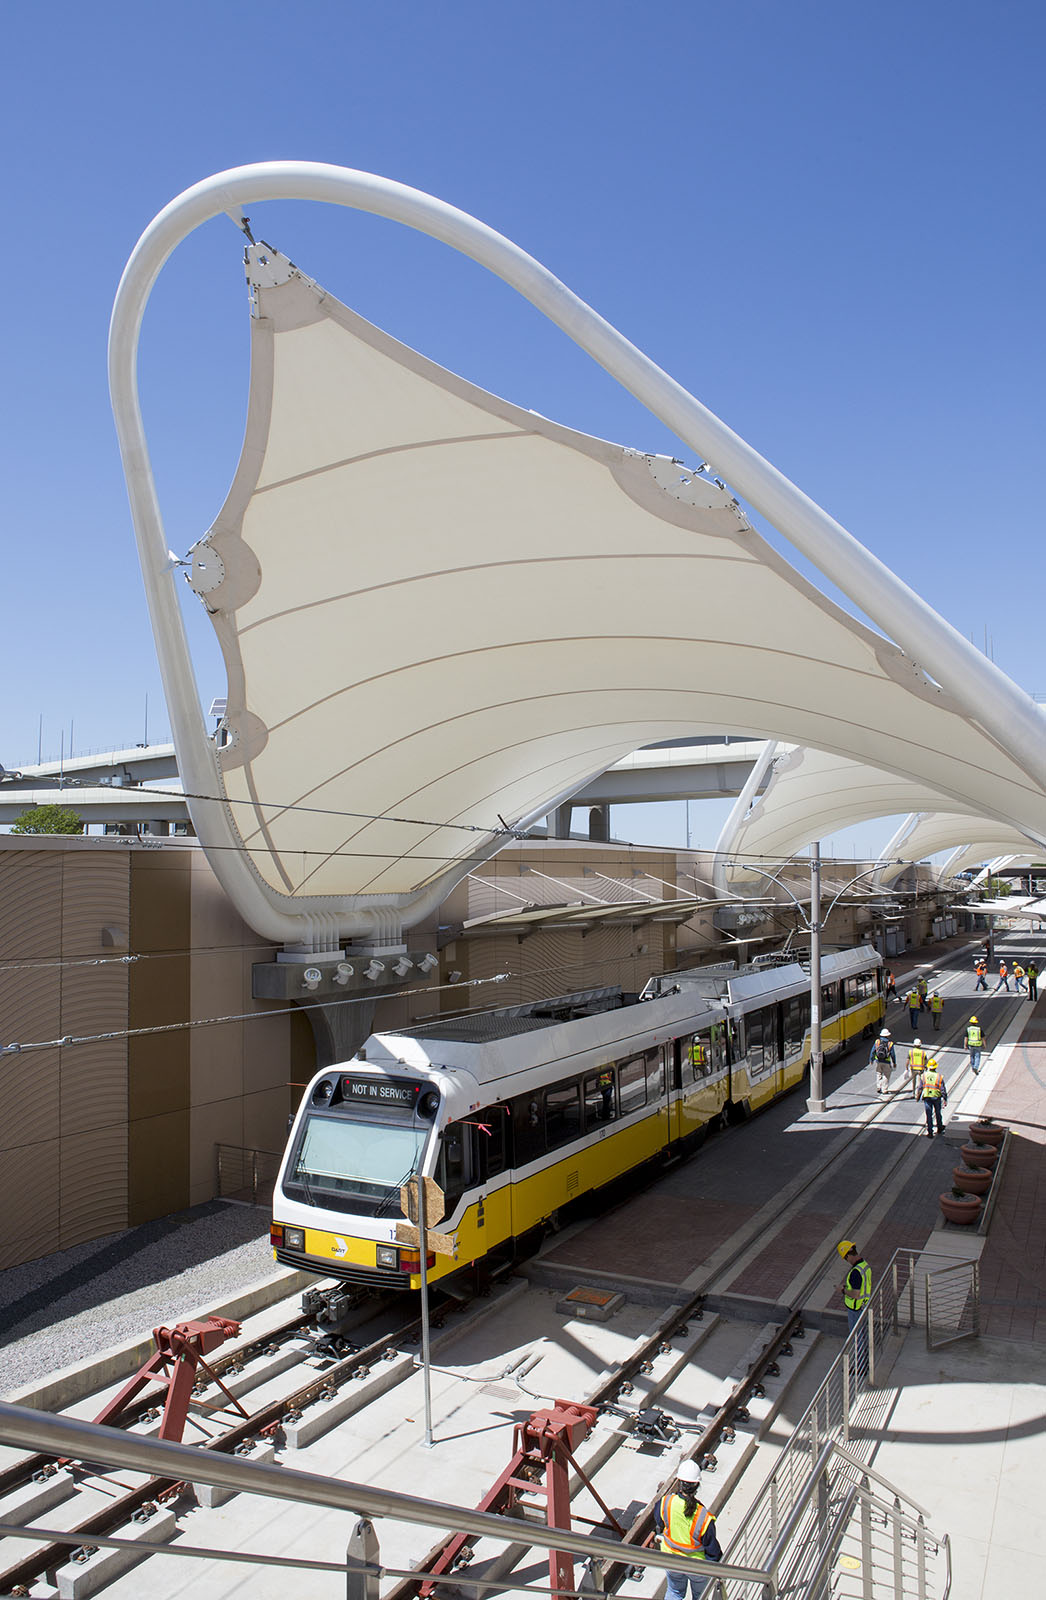 Dart To Dfw >> DART begins light rail train testing to DFW Airport Station | DART Daily